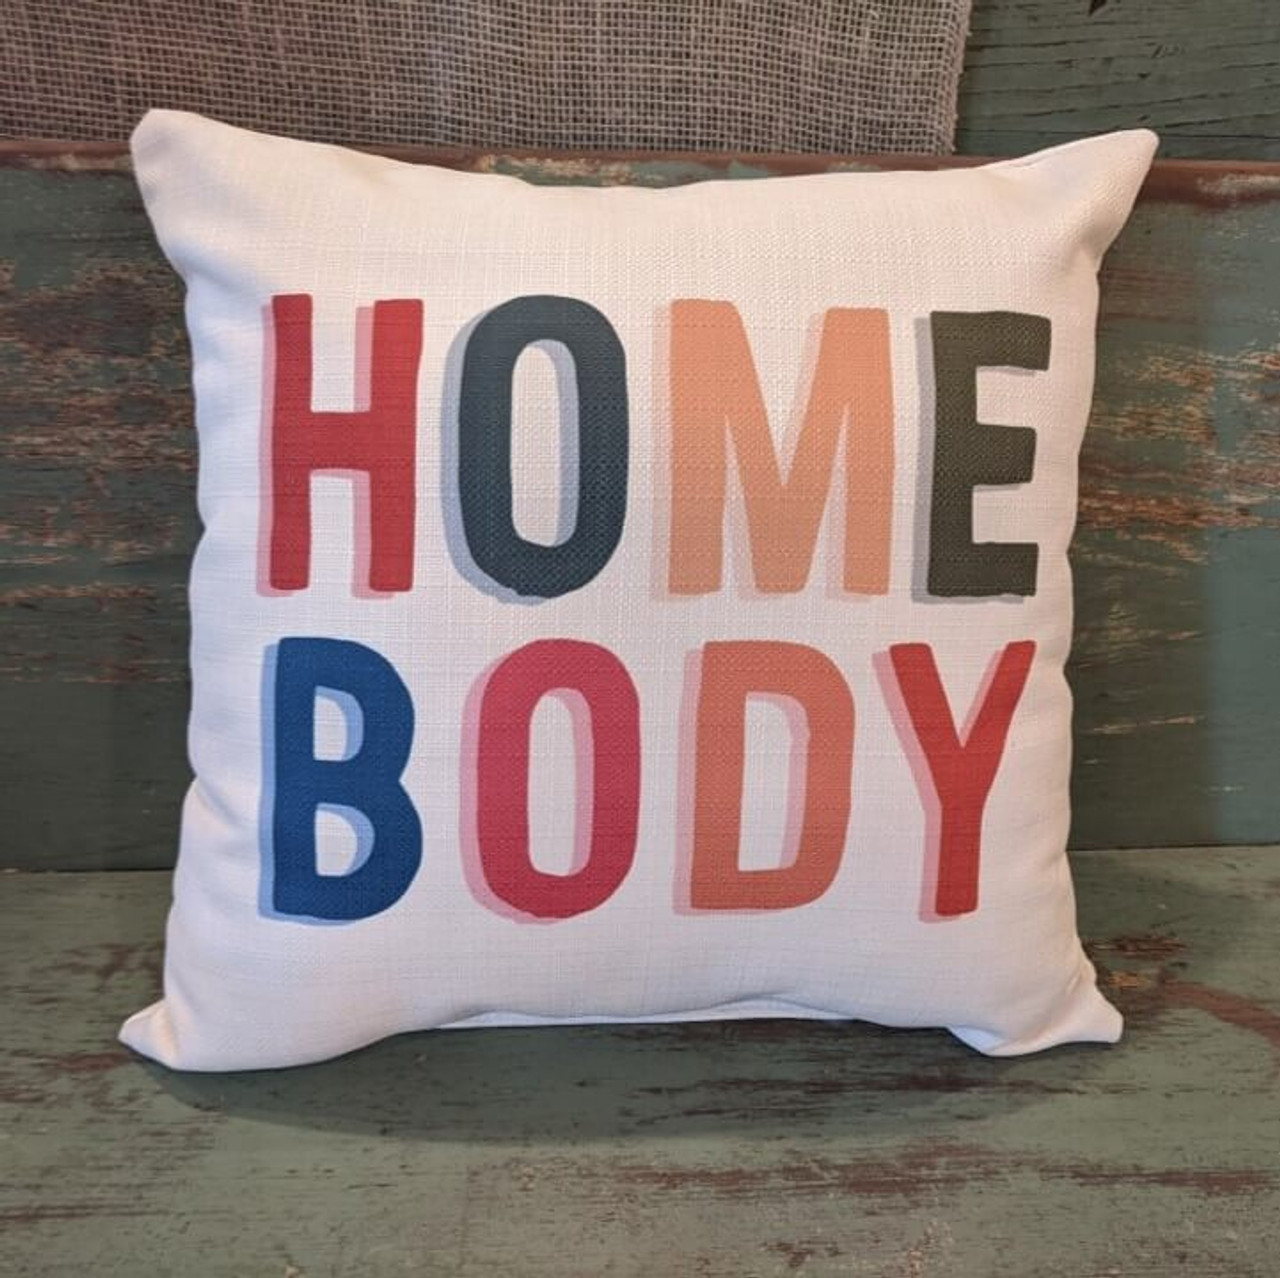 """The perfect way to cozy up any space! """"HOME BODY"""" sentiment is dyed directly into the fabric, so it won't peel or crack. Made from a soft yet durable polyester fabric, your pillow will arrive stuffed with poly-fill and sewn shut. Approx. 17"""" square; machine washable in cold water, delicate cycle- fluff, air dry flat."""